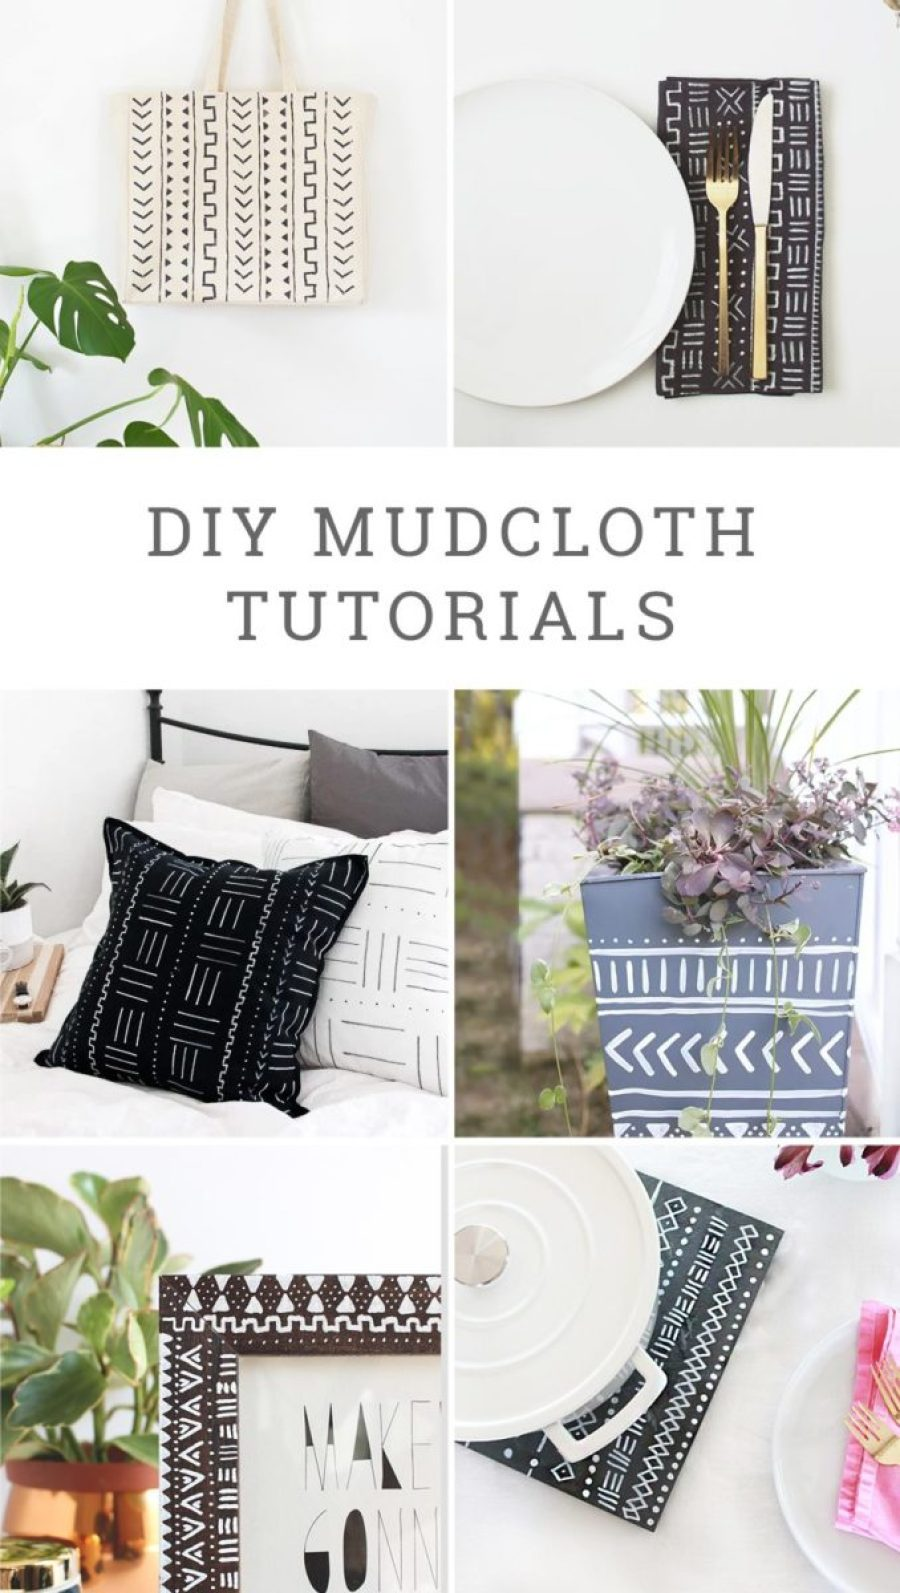 DIY Mudcloth Tutorials